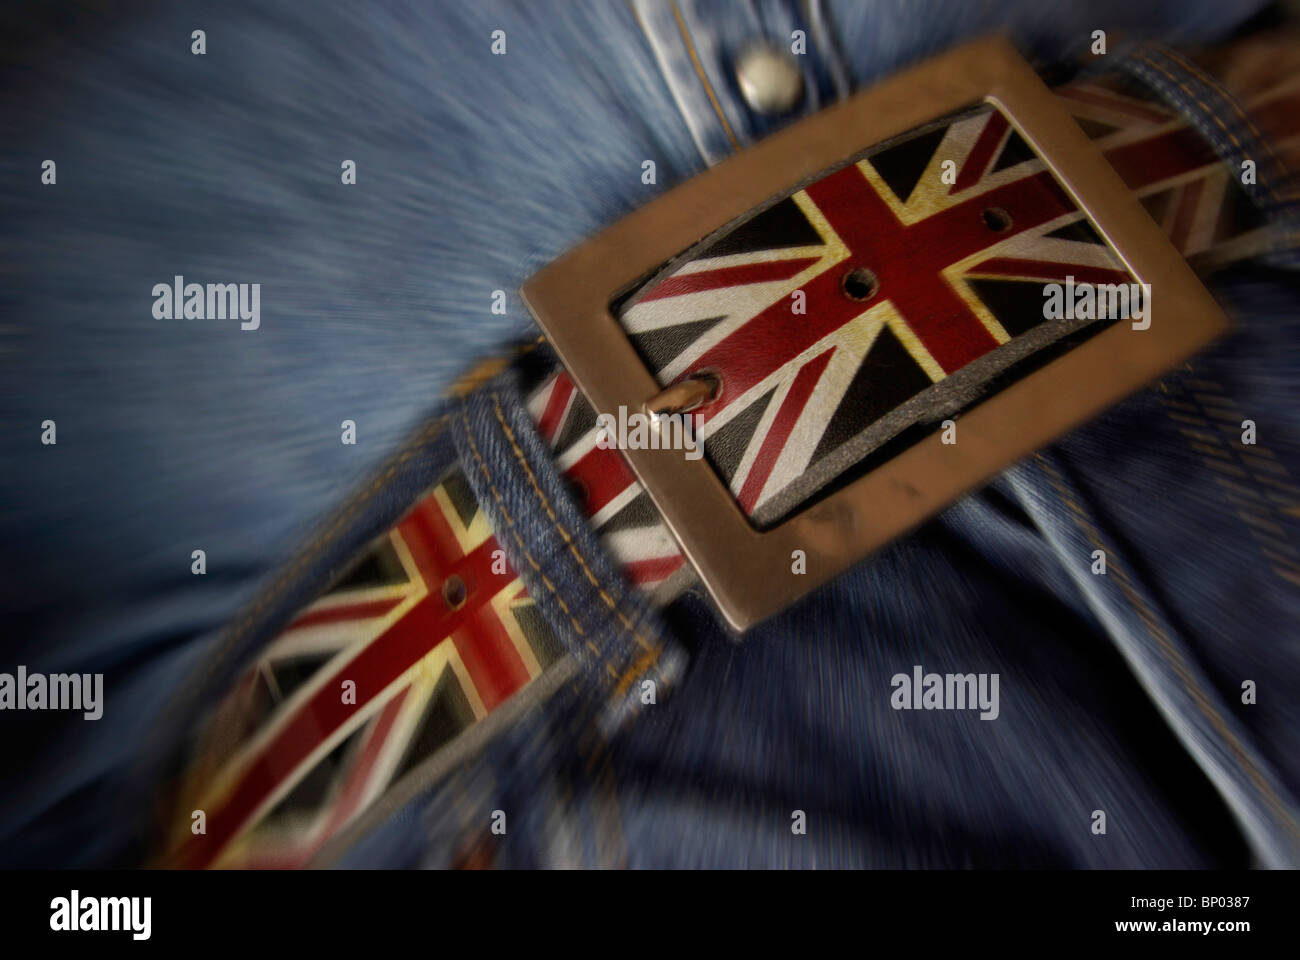 Tighten your belt, Tightening your belt concept featuring the UK flag. (cutting costs,Budget cuts) - Stock Image